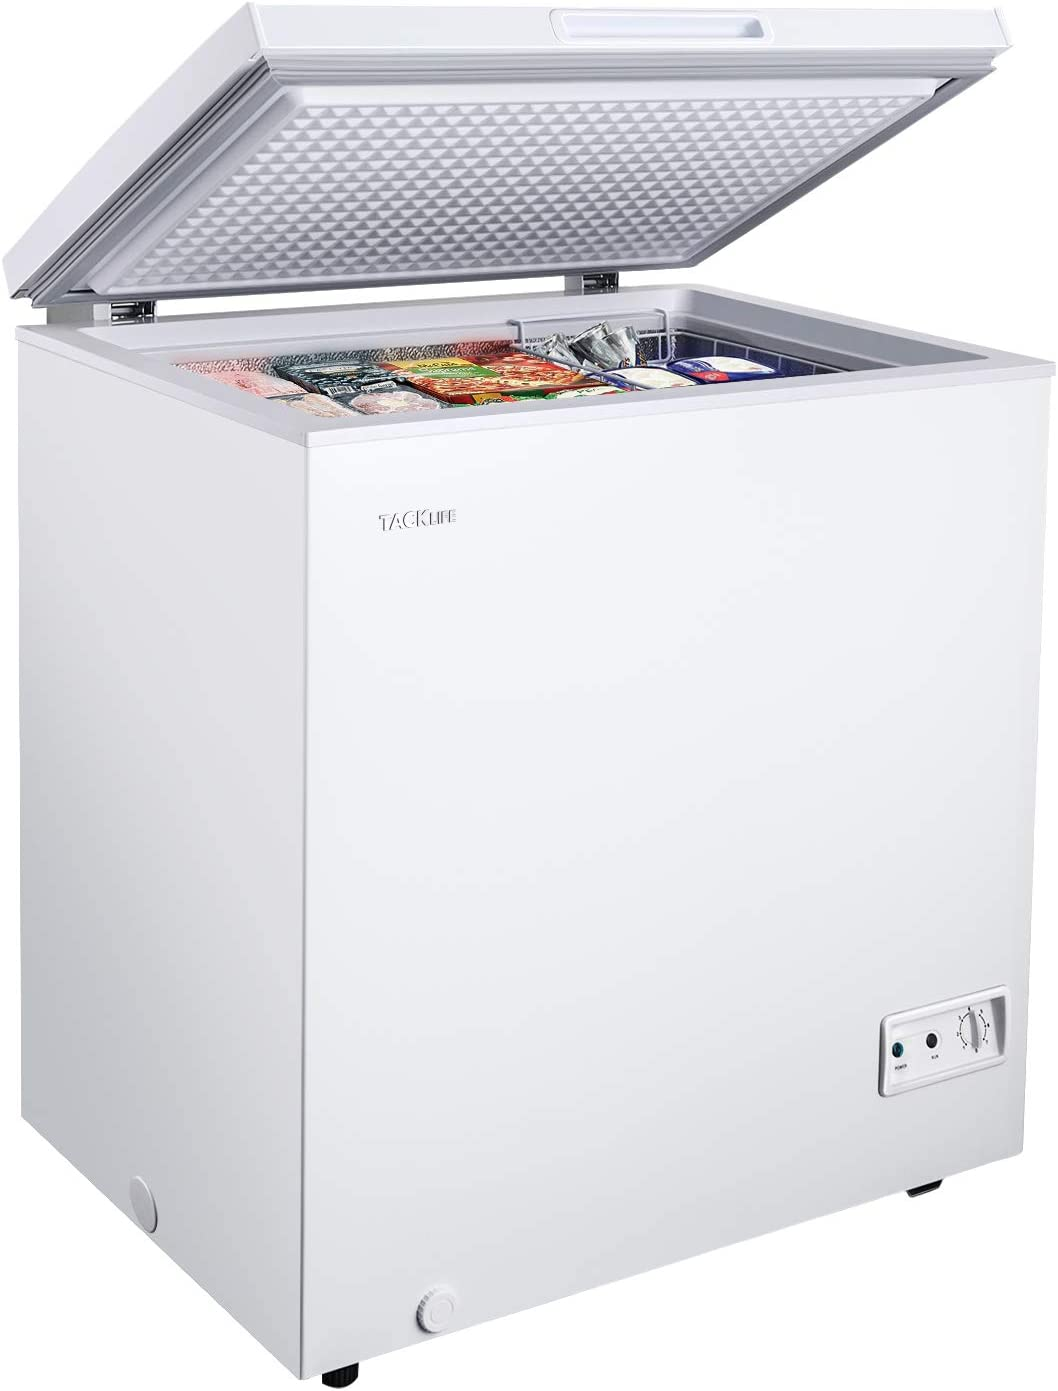 Chest Freezer, 5 Cu Ft Small Freezer 10.4℉ to -11.2℉, with Removable Basket/7 Temperature Setting/Power Saving, White, for Home/Kitchen/Office/Bar - MPWCF053T